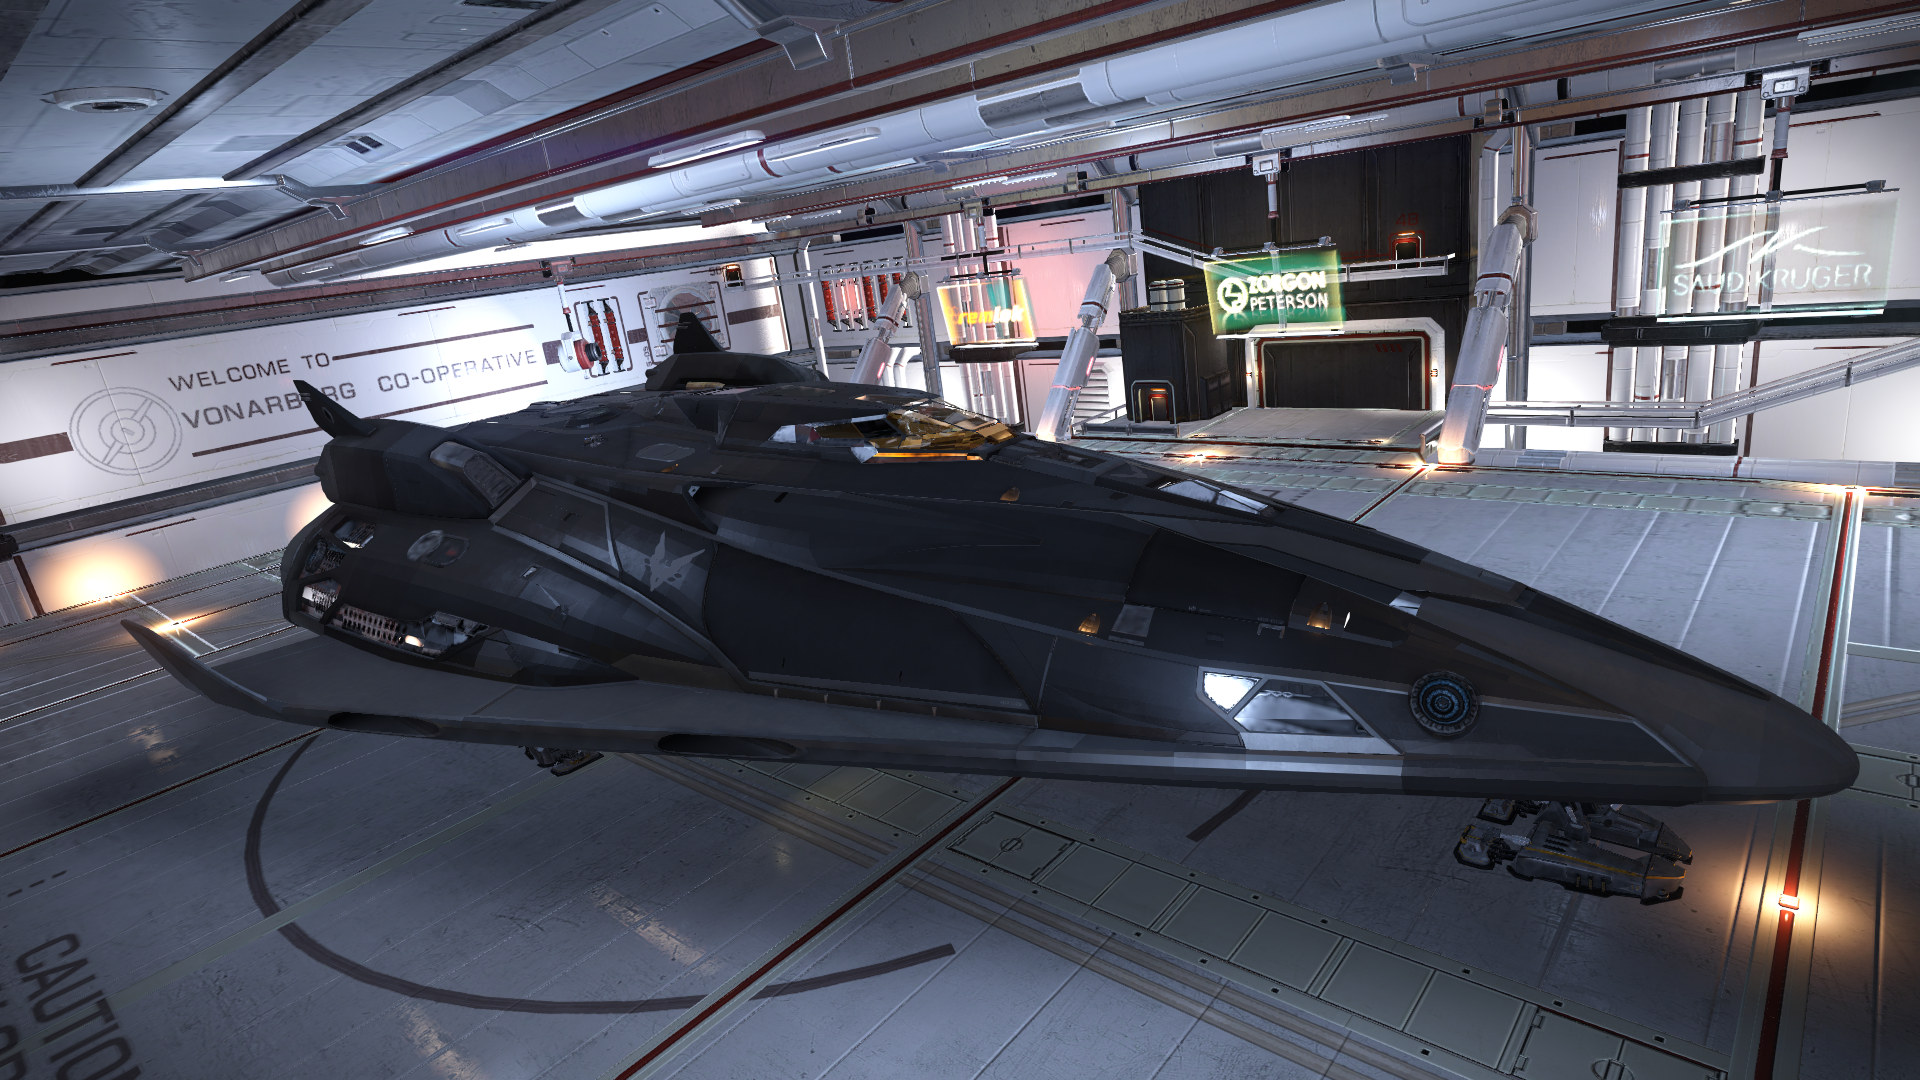 Fer-de-Lance docked in base hangar.